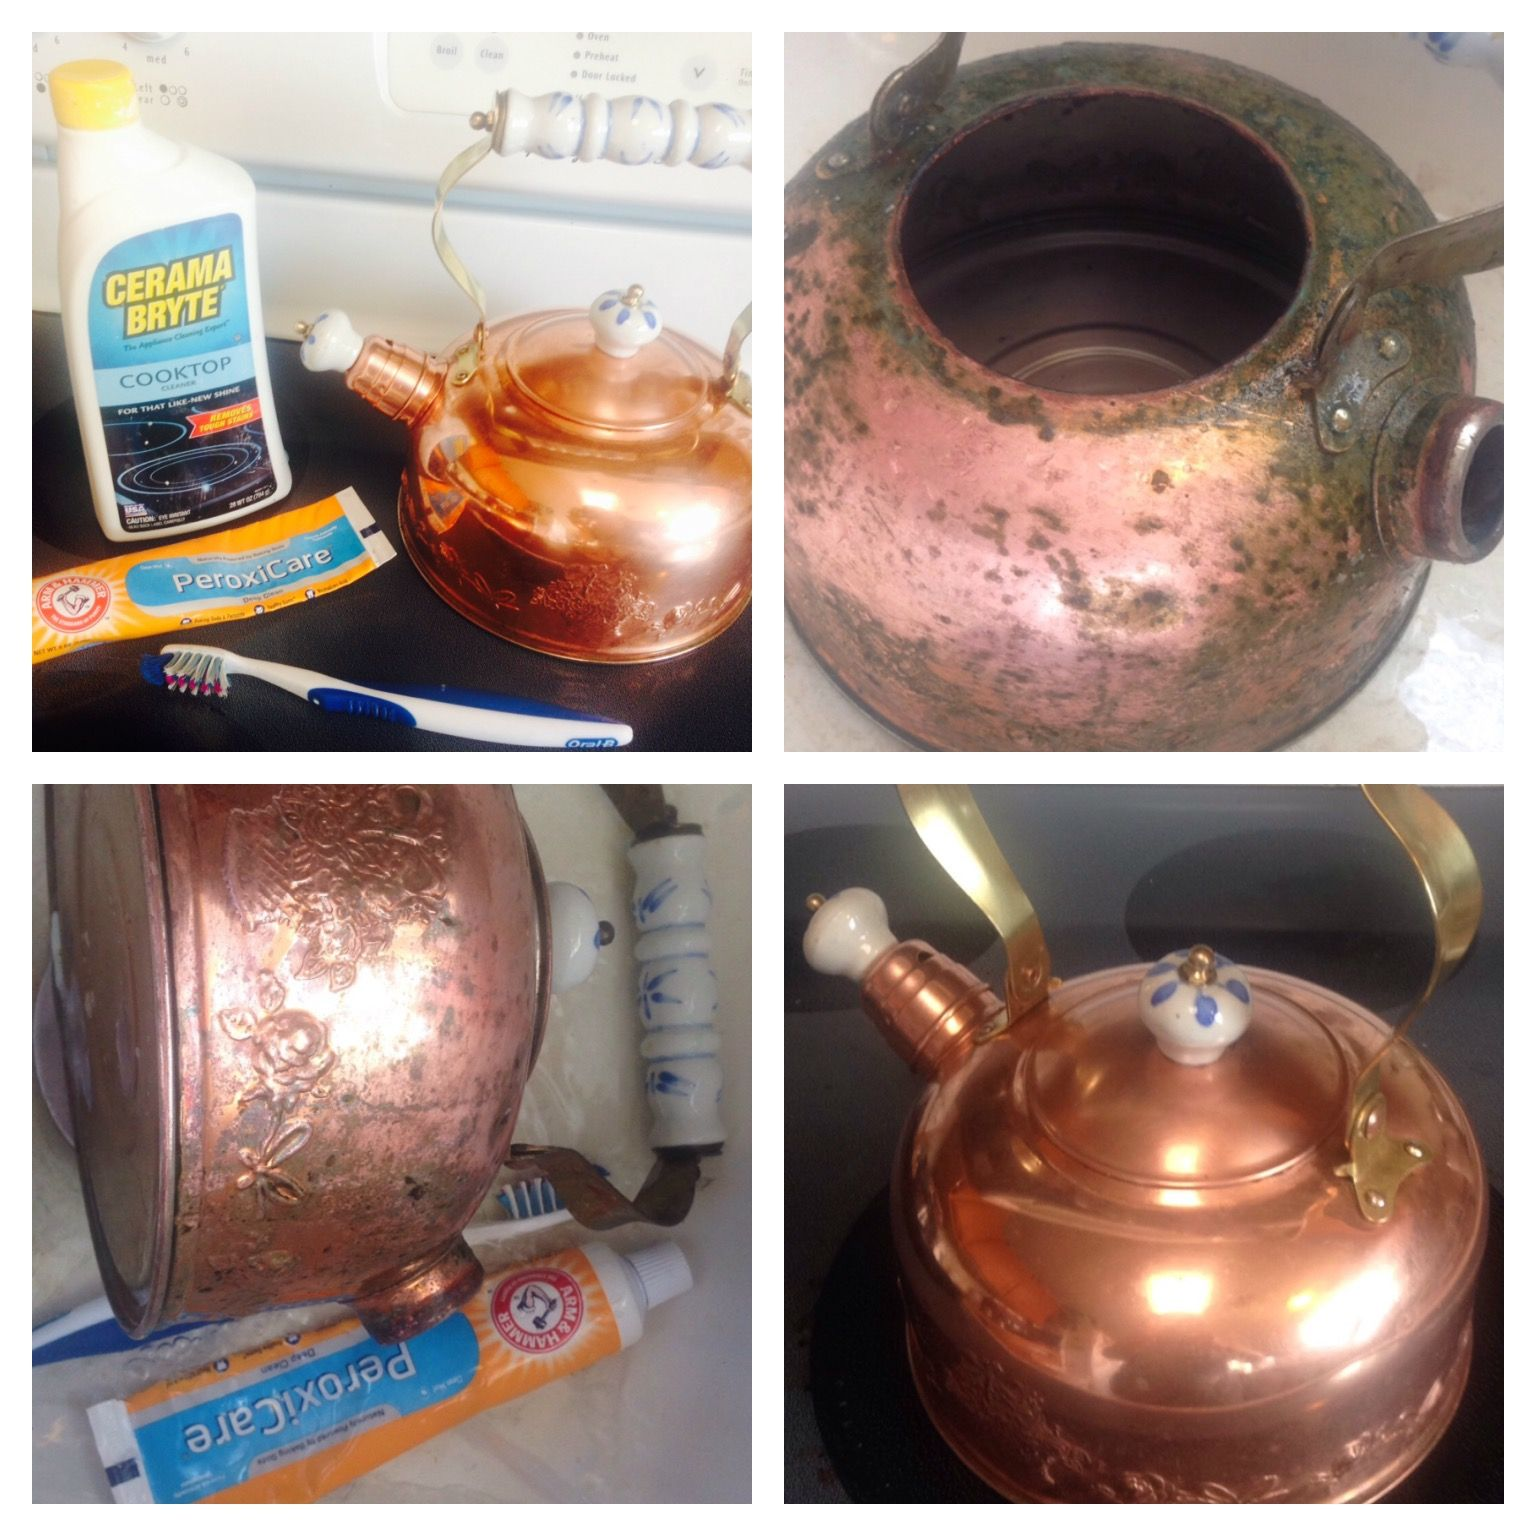 Clean Old Copper Tea Pot With Glass Stove Top Cleaner Cerama Byte